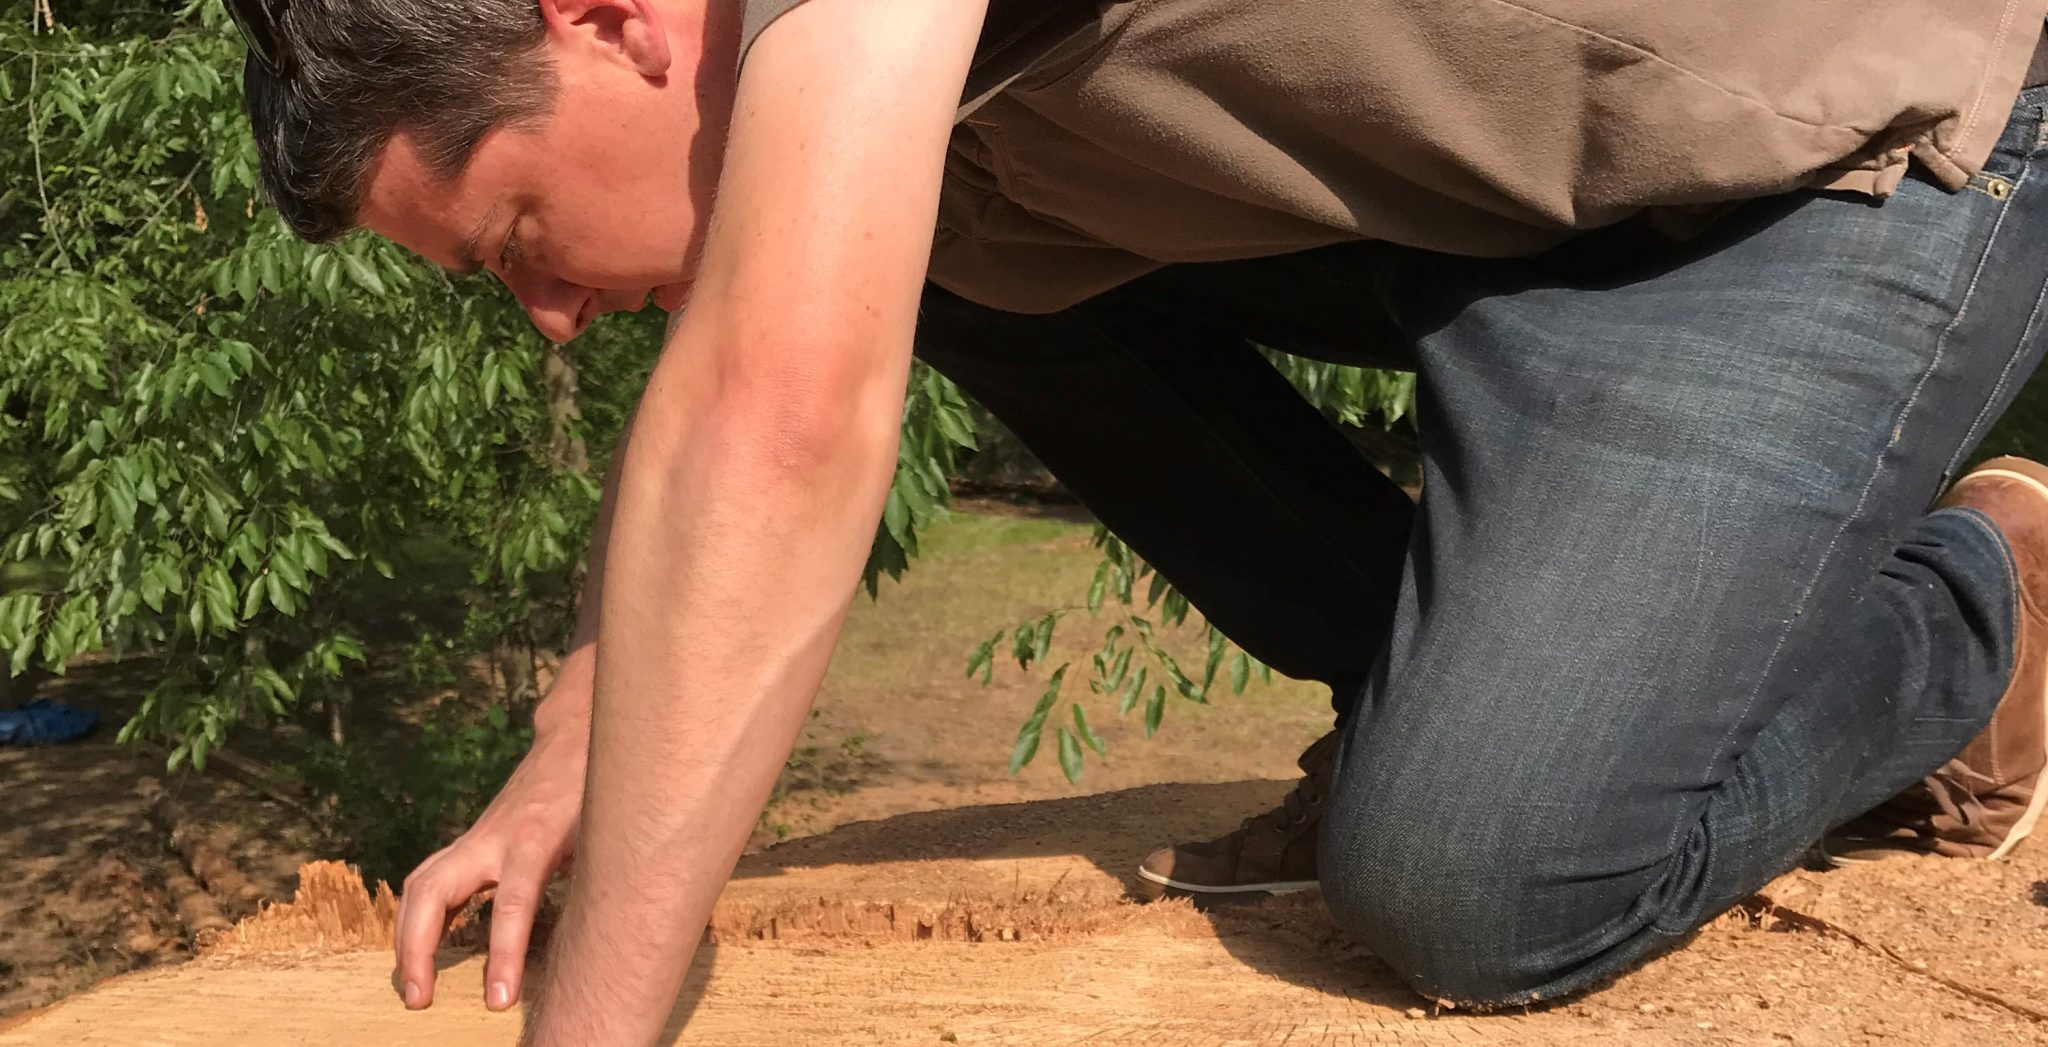 Dr. Flatley inspects rings on a recently cut tree